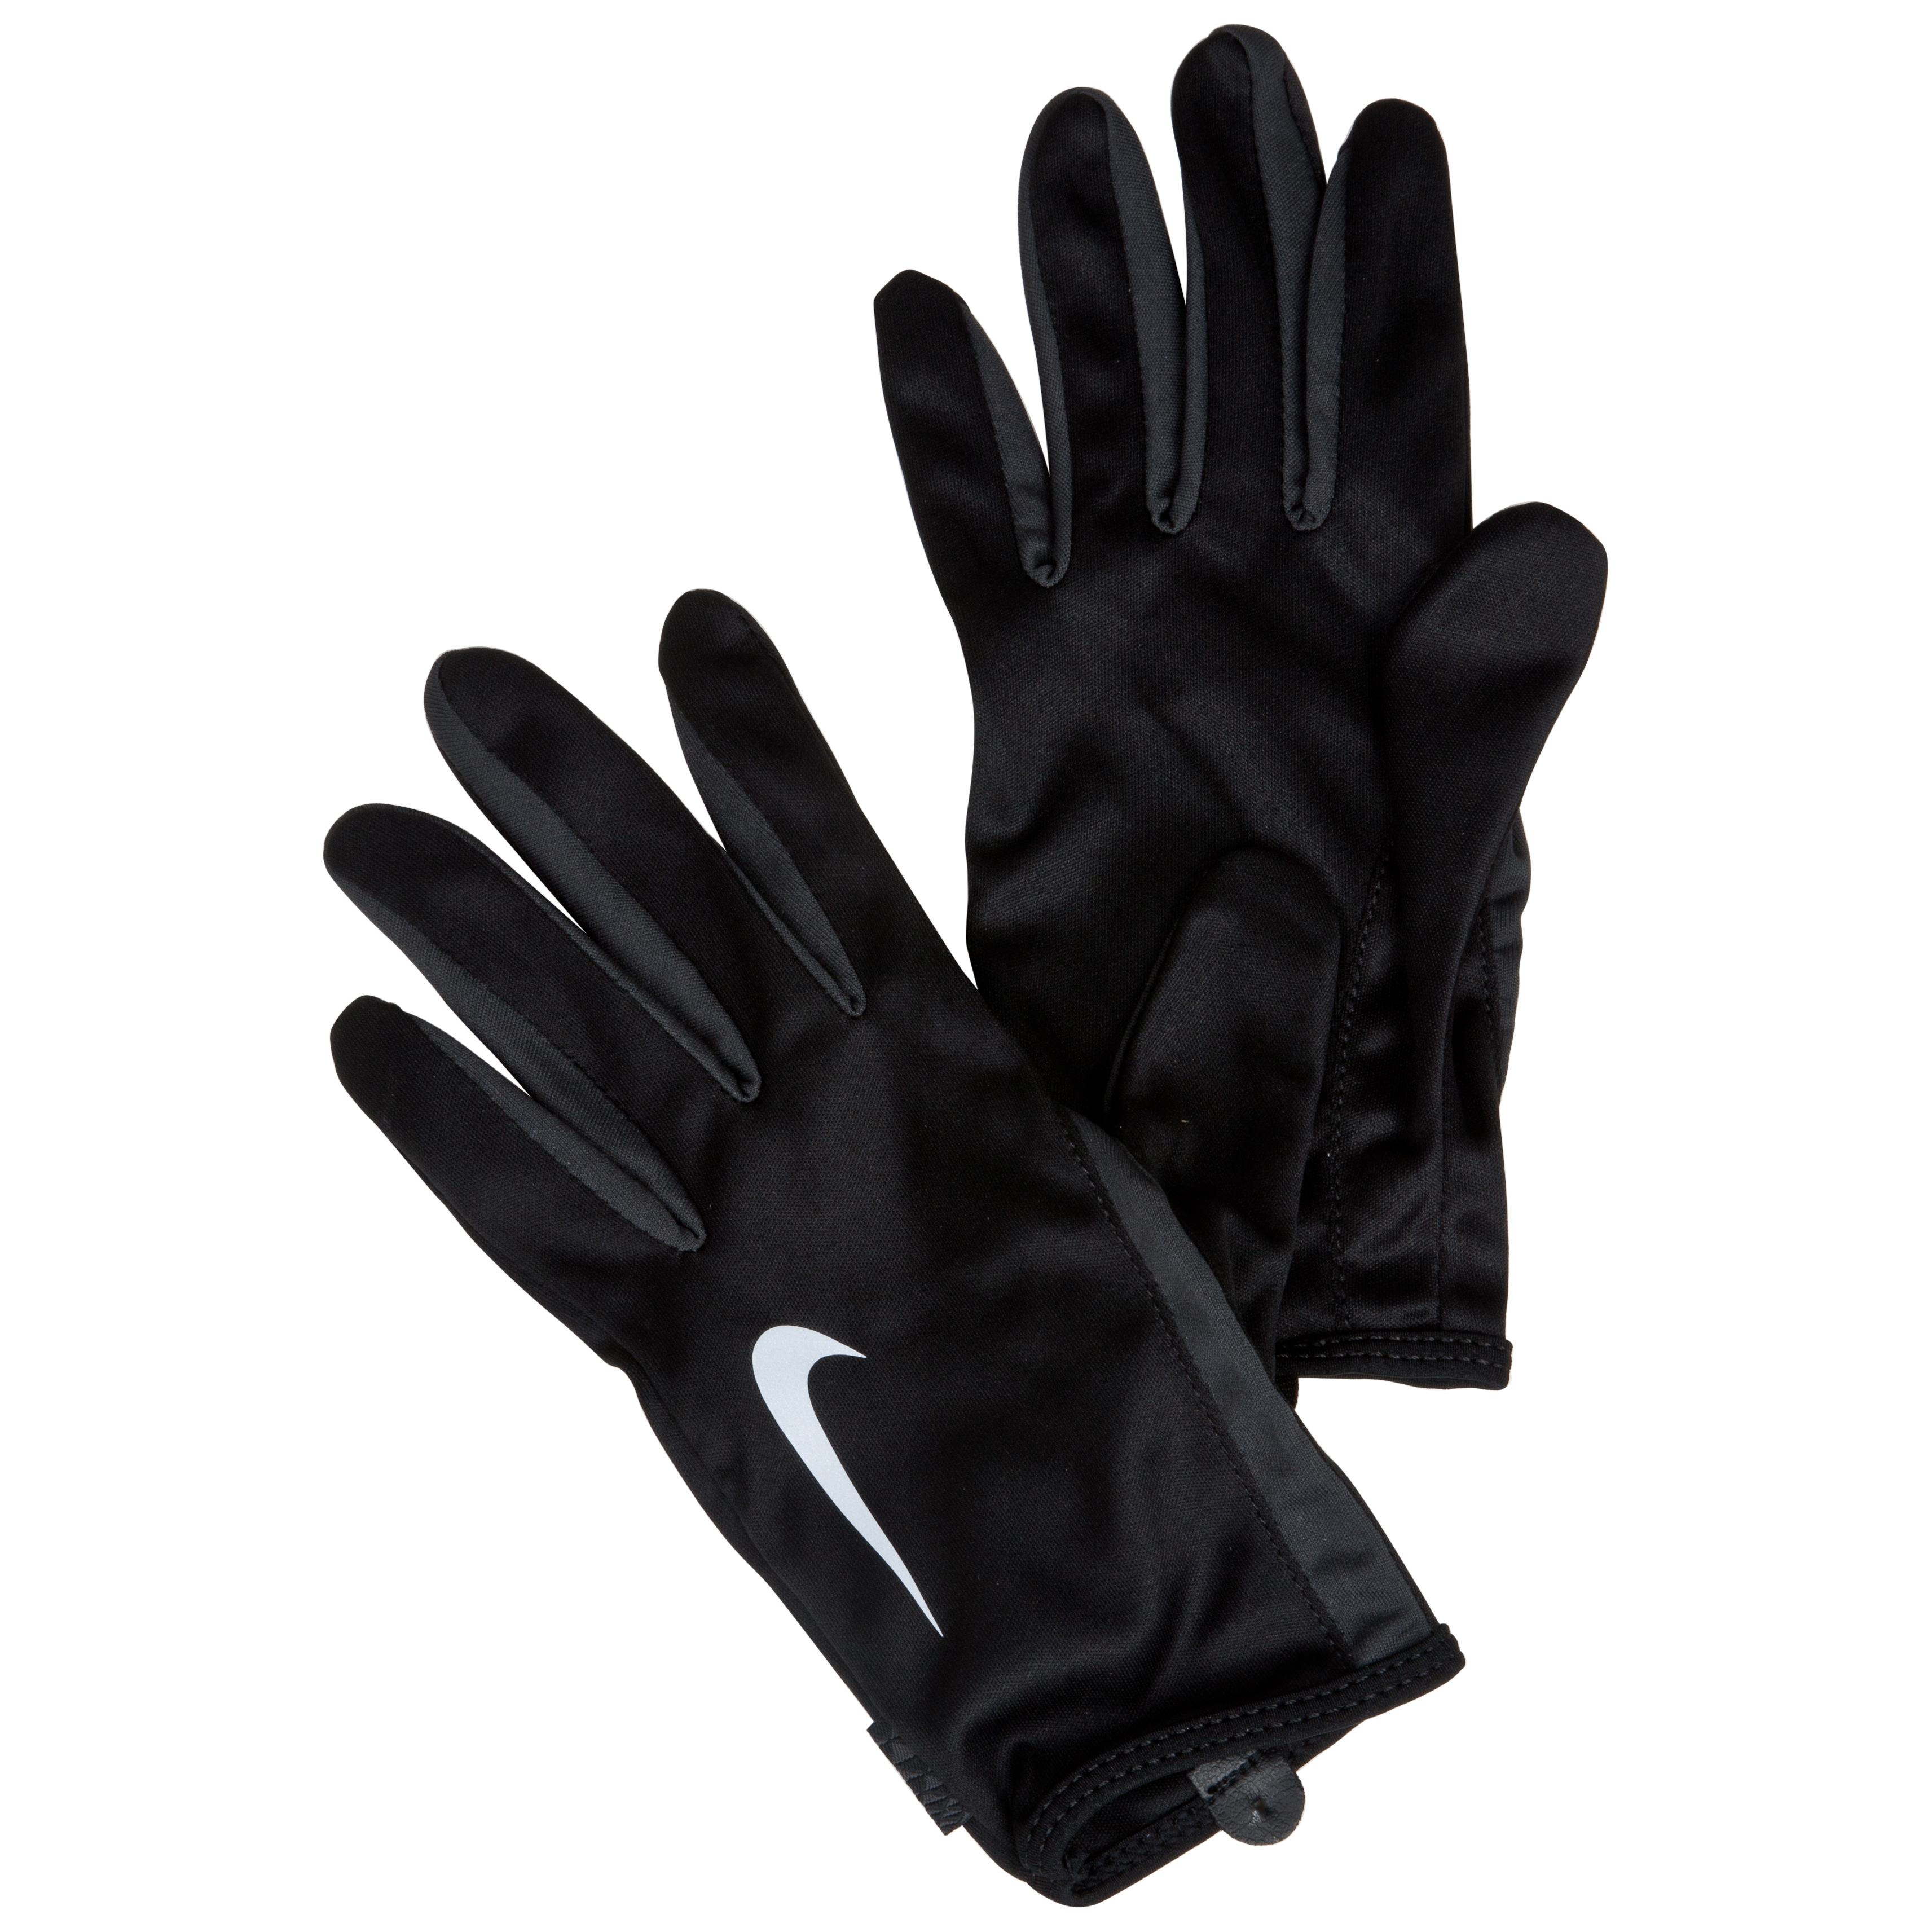 Nike Swift Running Gloves - Black/Anthracite